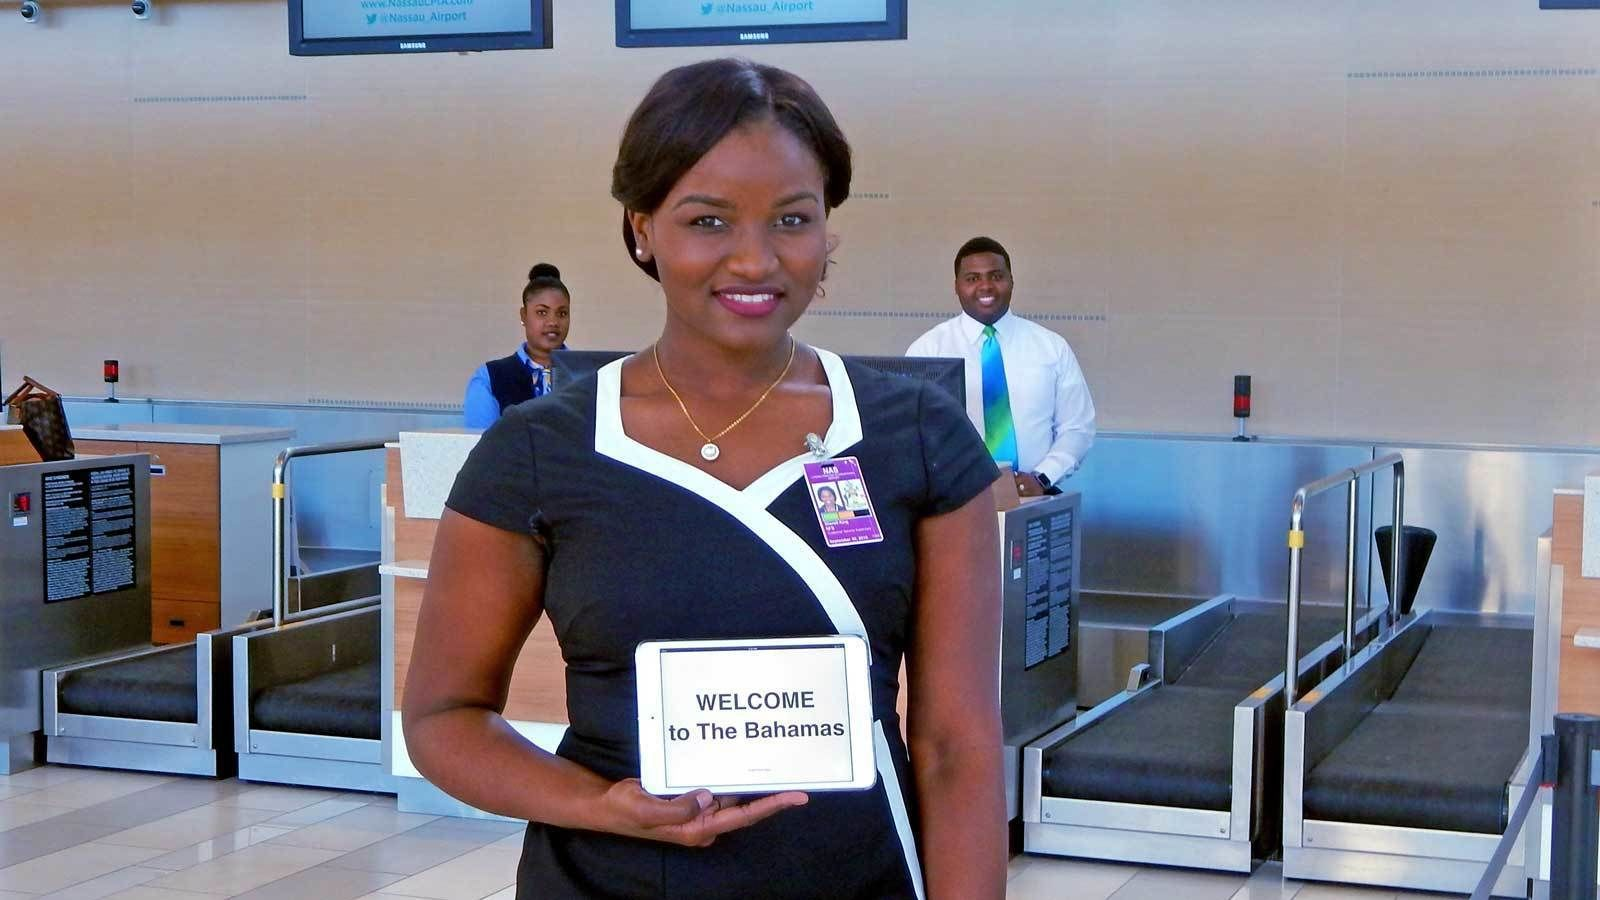 woman with a welcome sign at the airport in Nassau